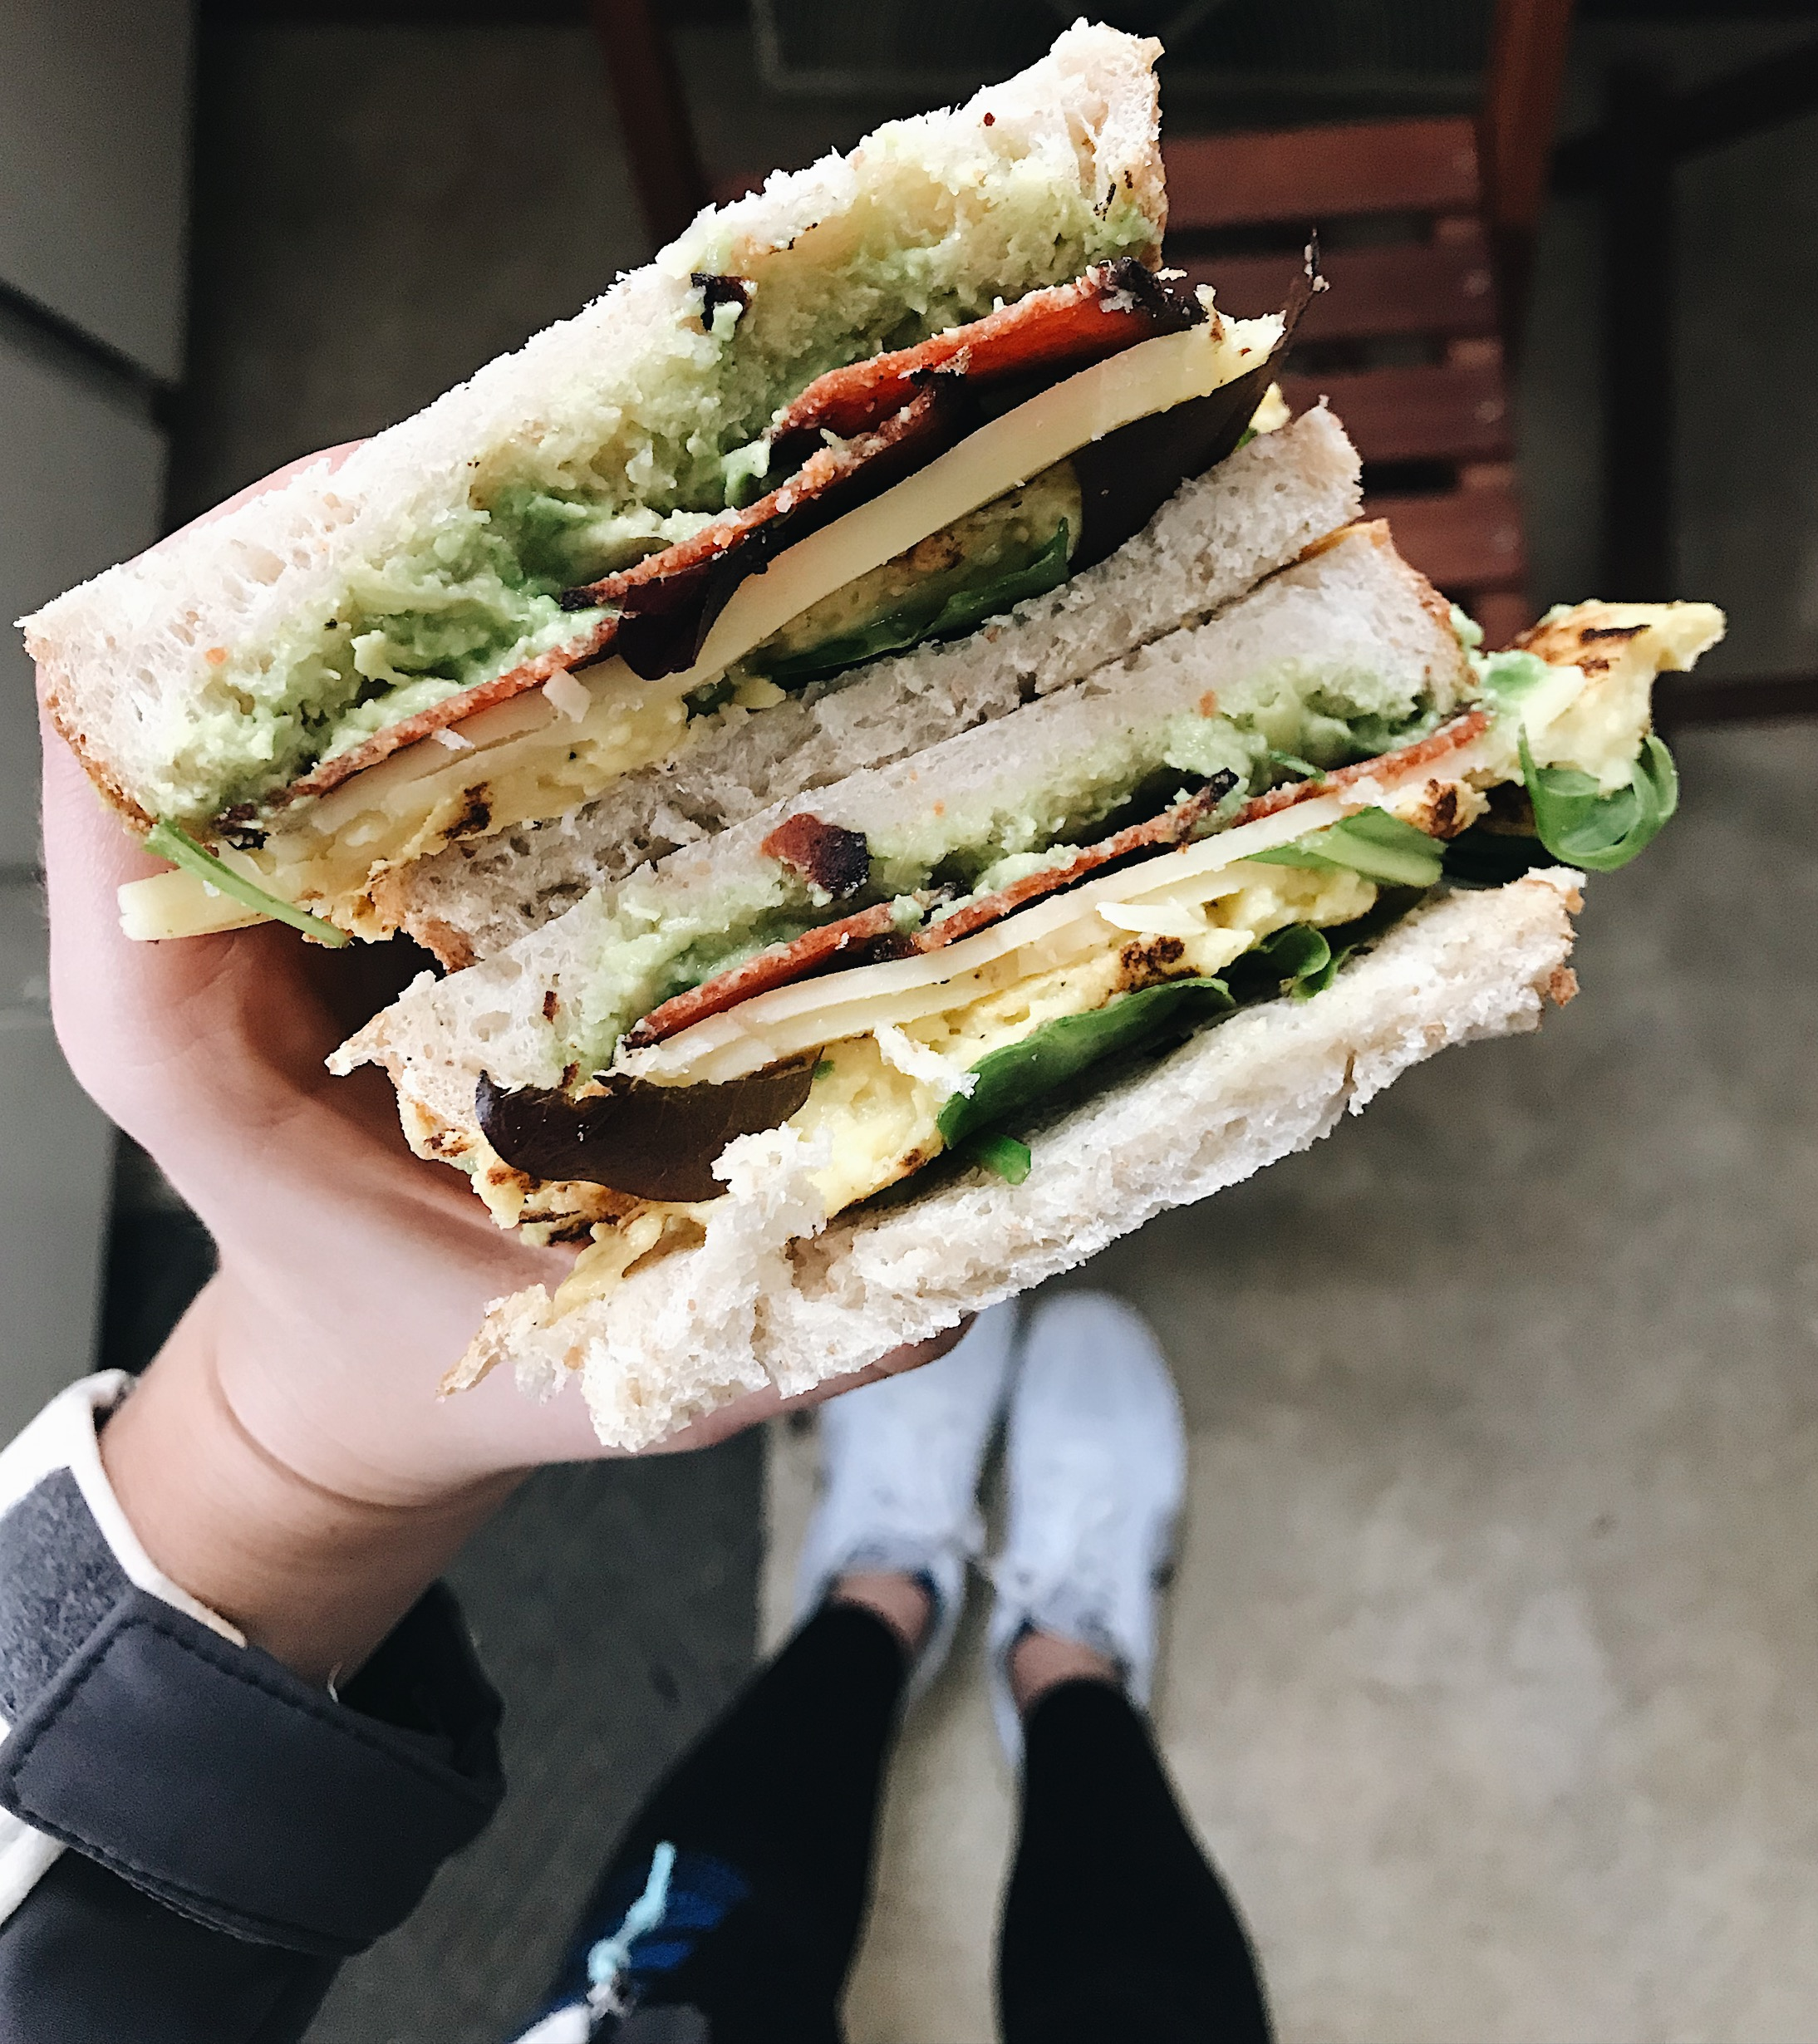 Vegan bacon, egg and cheese with avocado on sourdough!